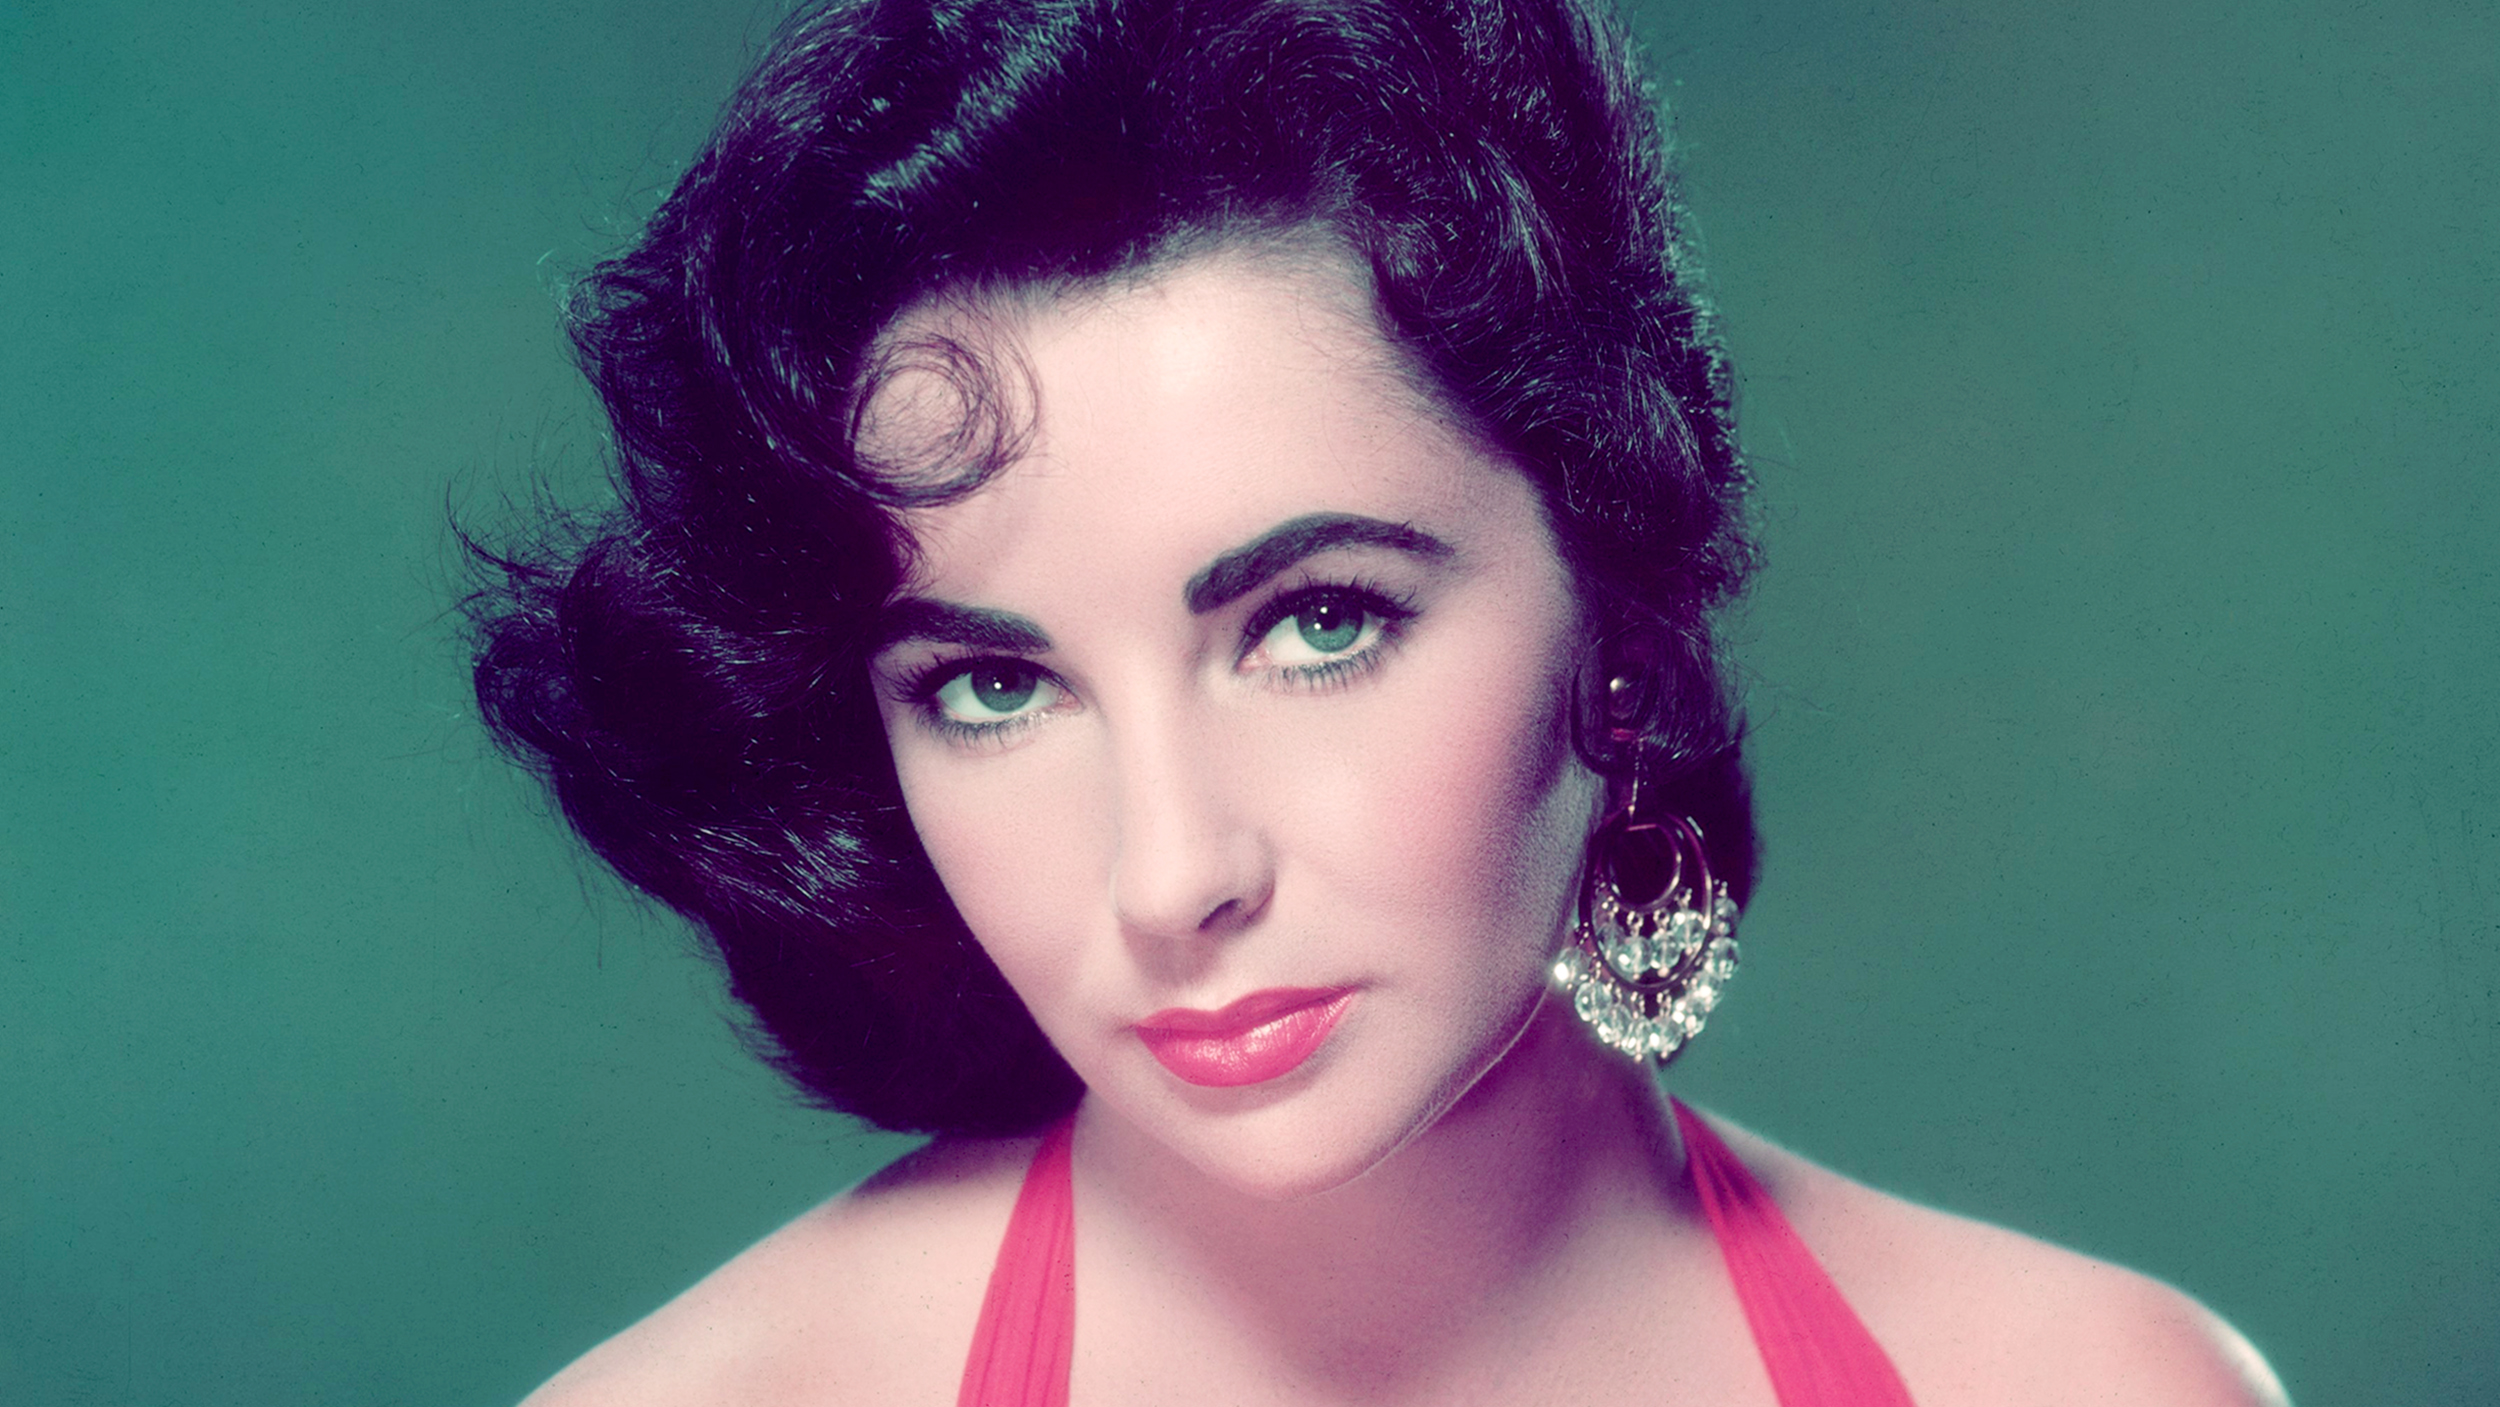 Elizabeth Taylor S Makeup Video Goes Viral Today Com